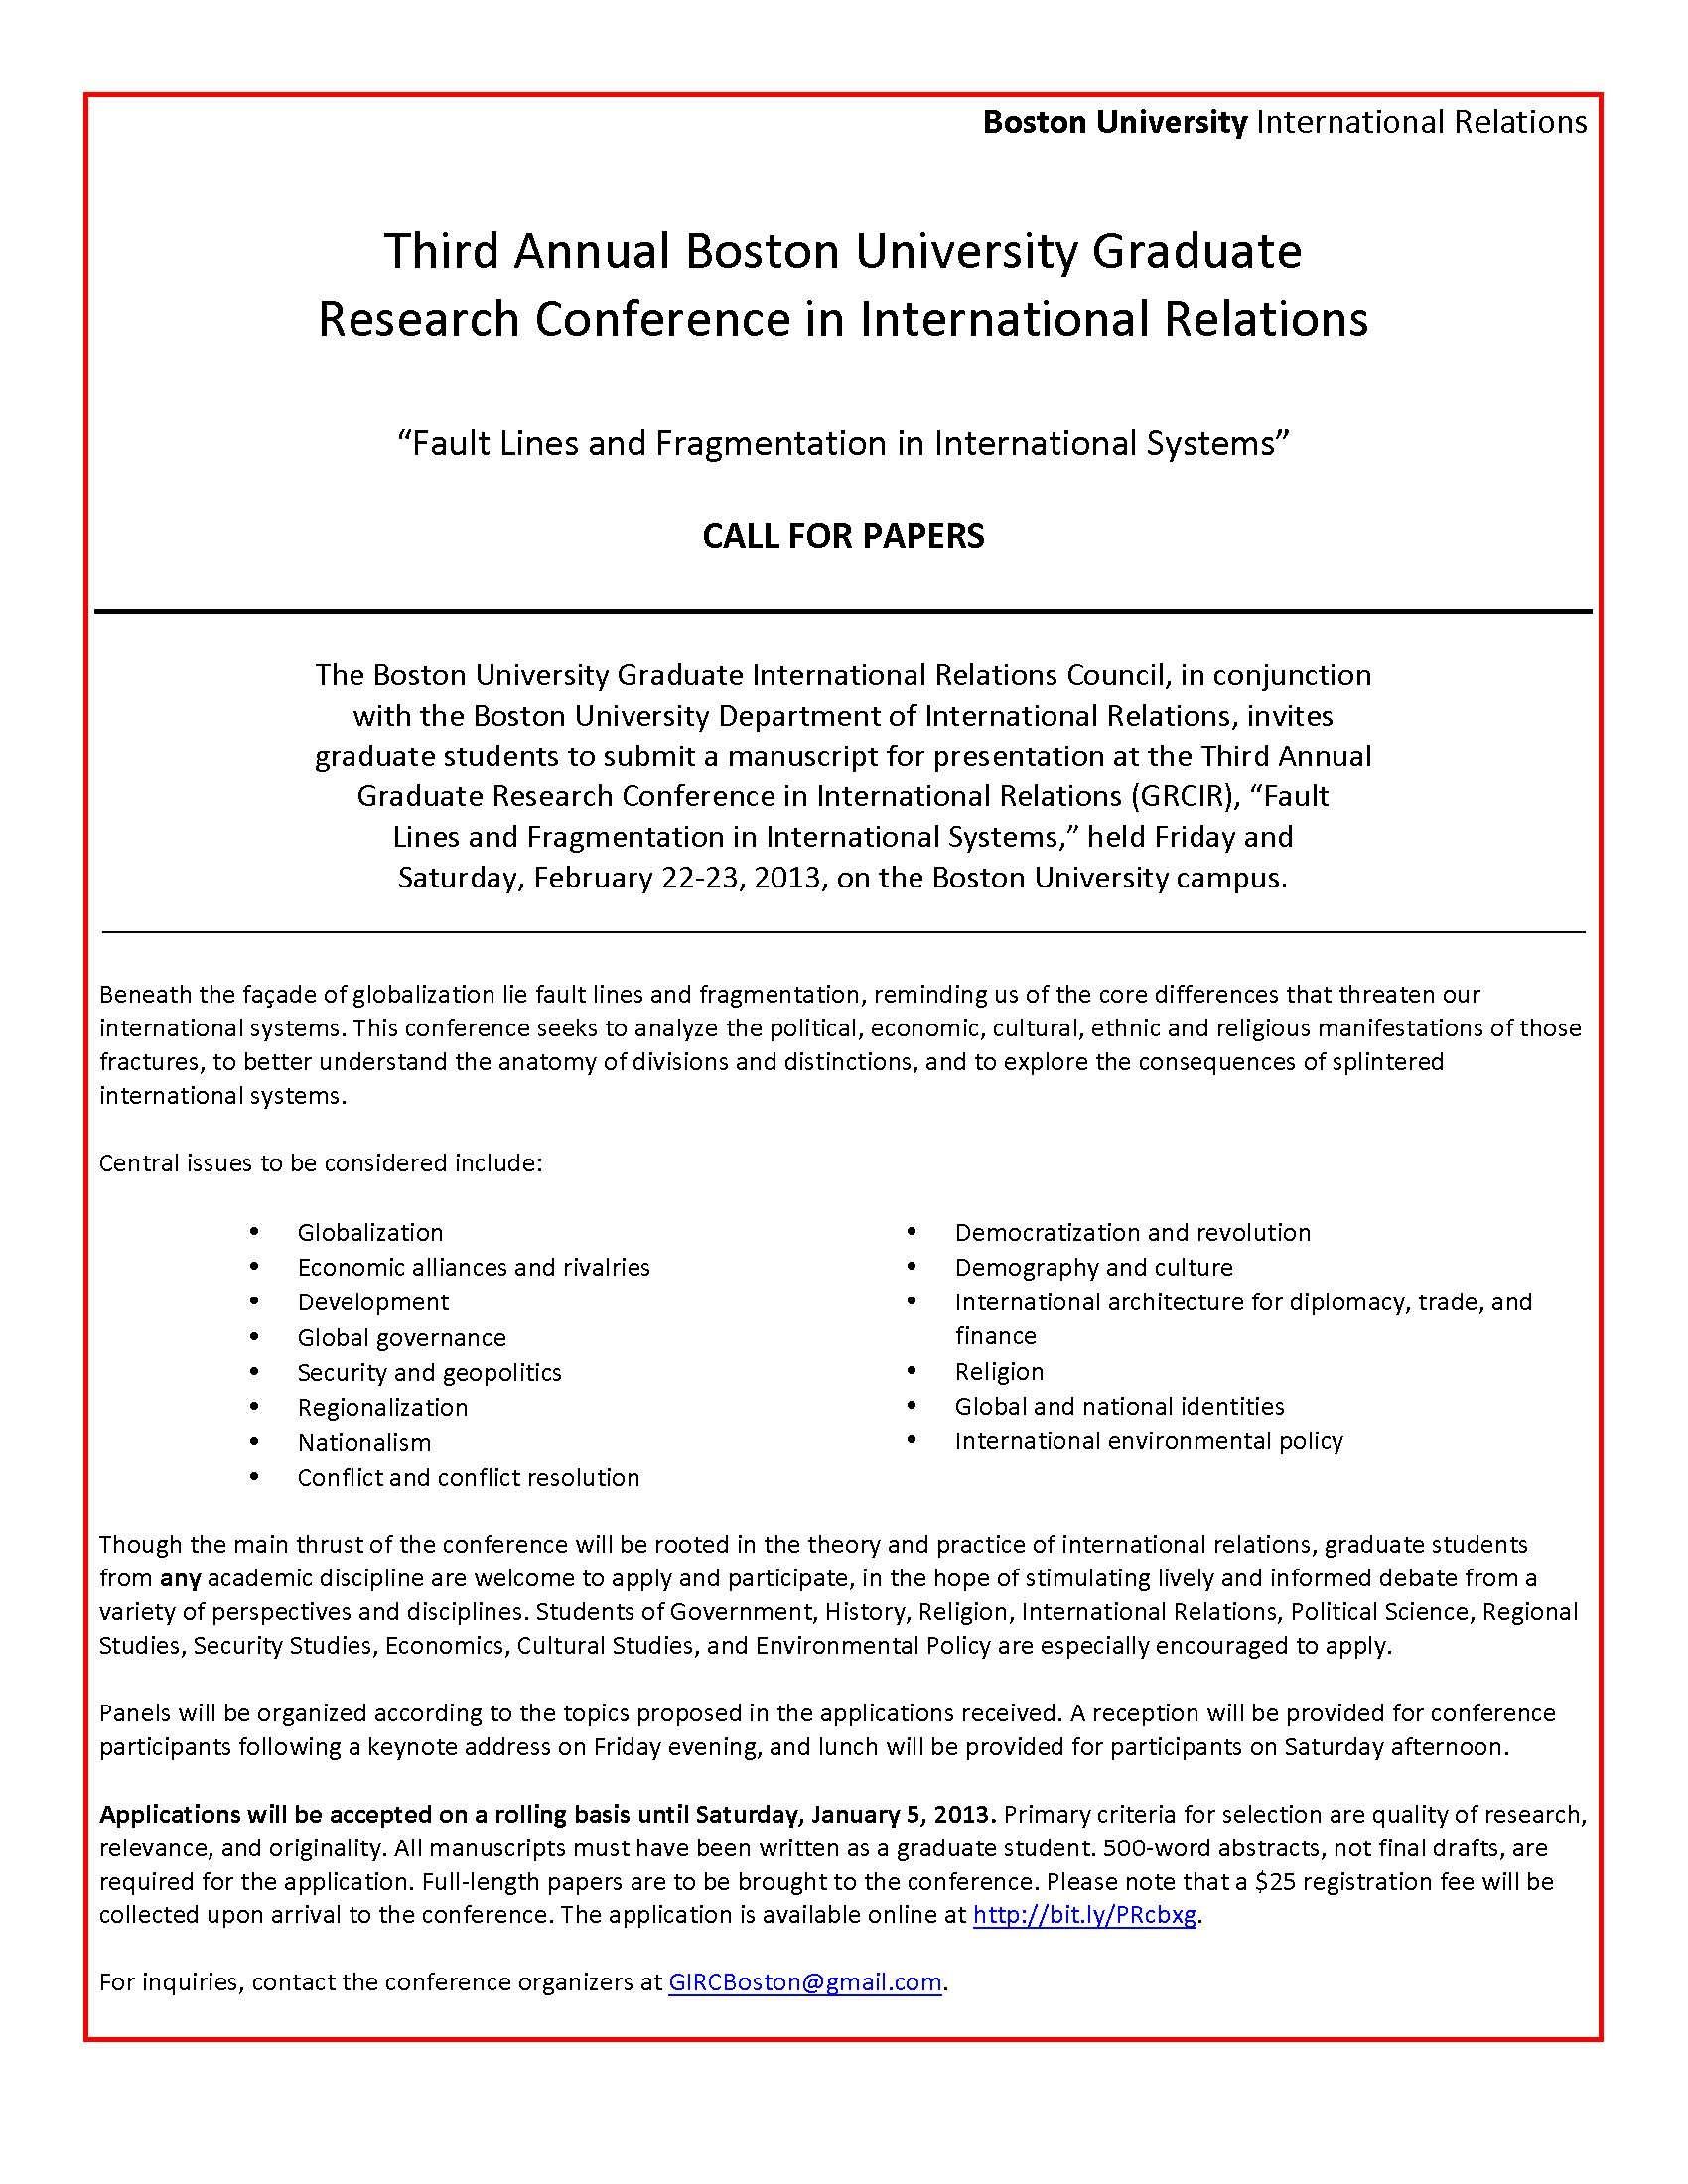 Call For Papers Graduate Research Conference In International